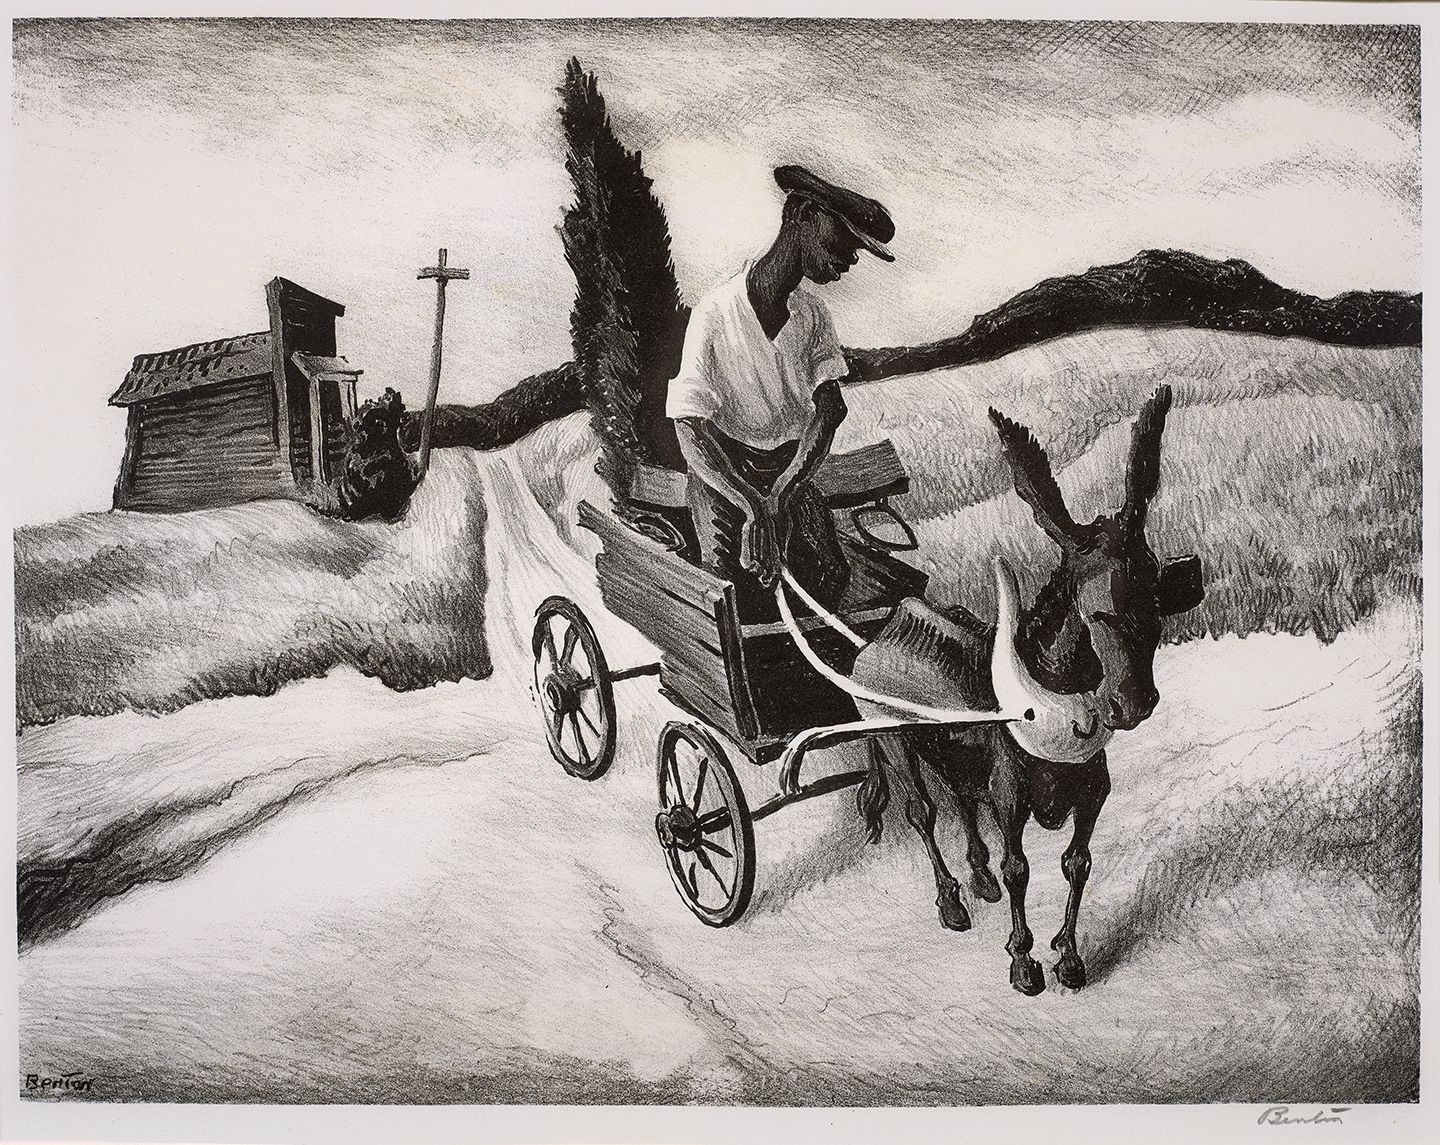 Thomas Hart Benton (1889 – 1975), Lonesome Road, 1938